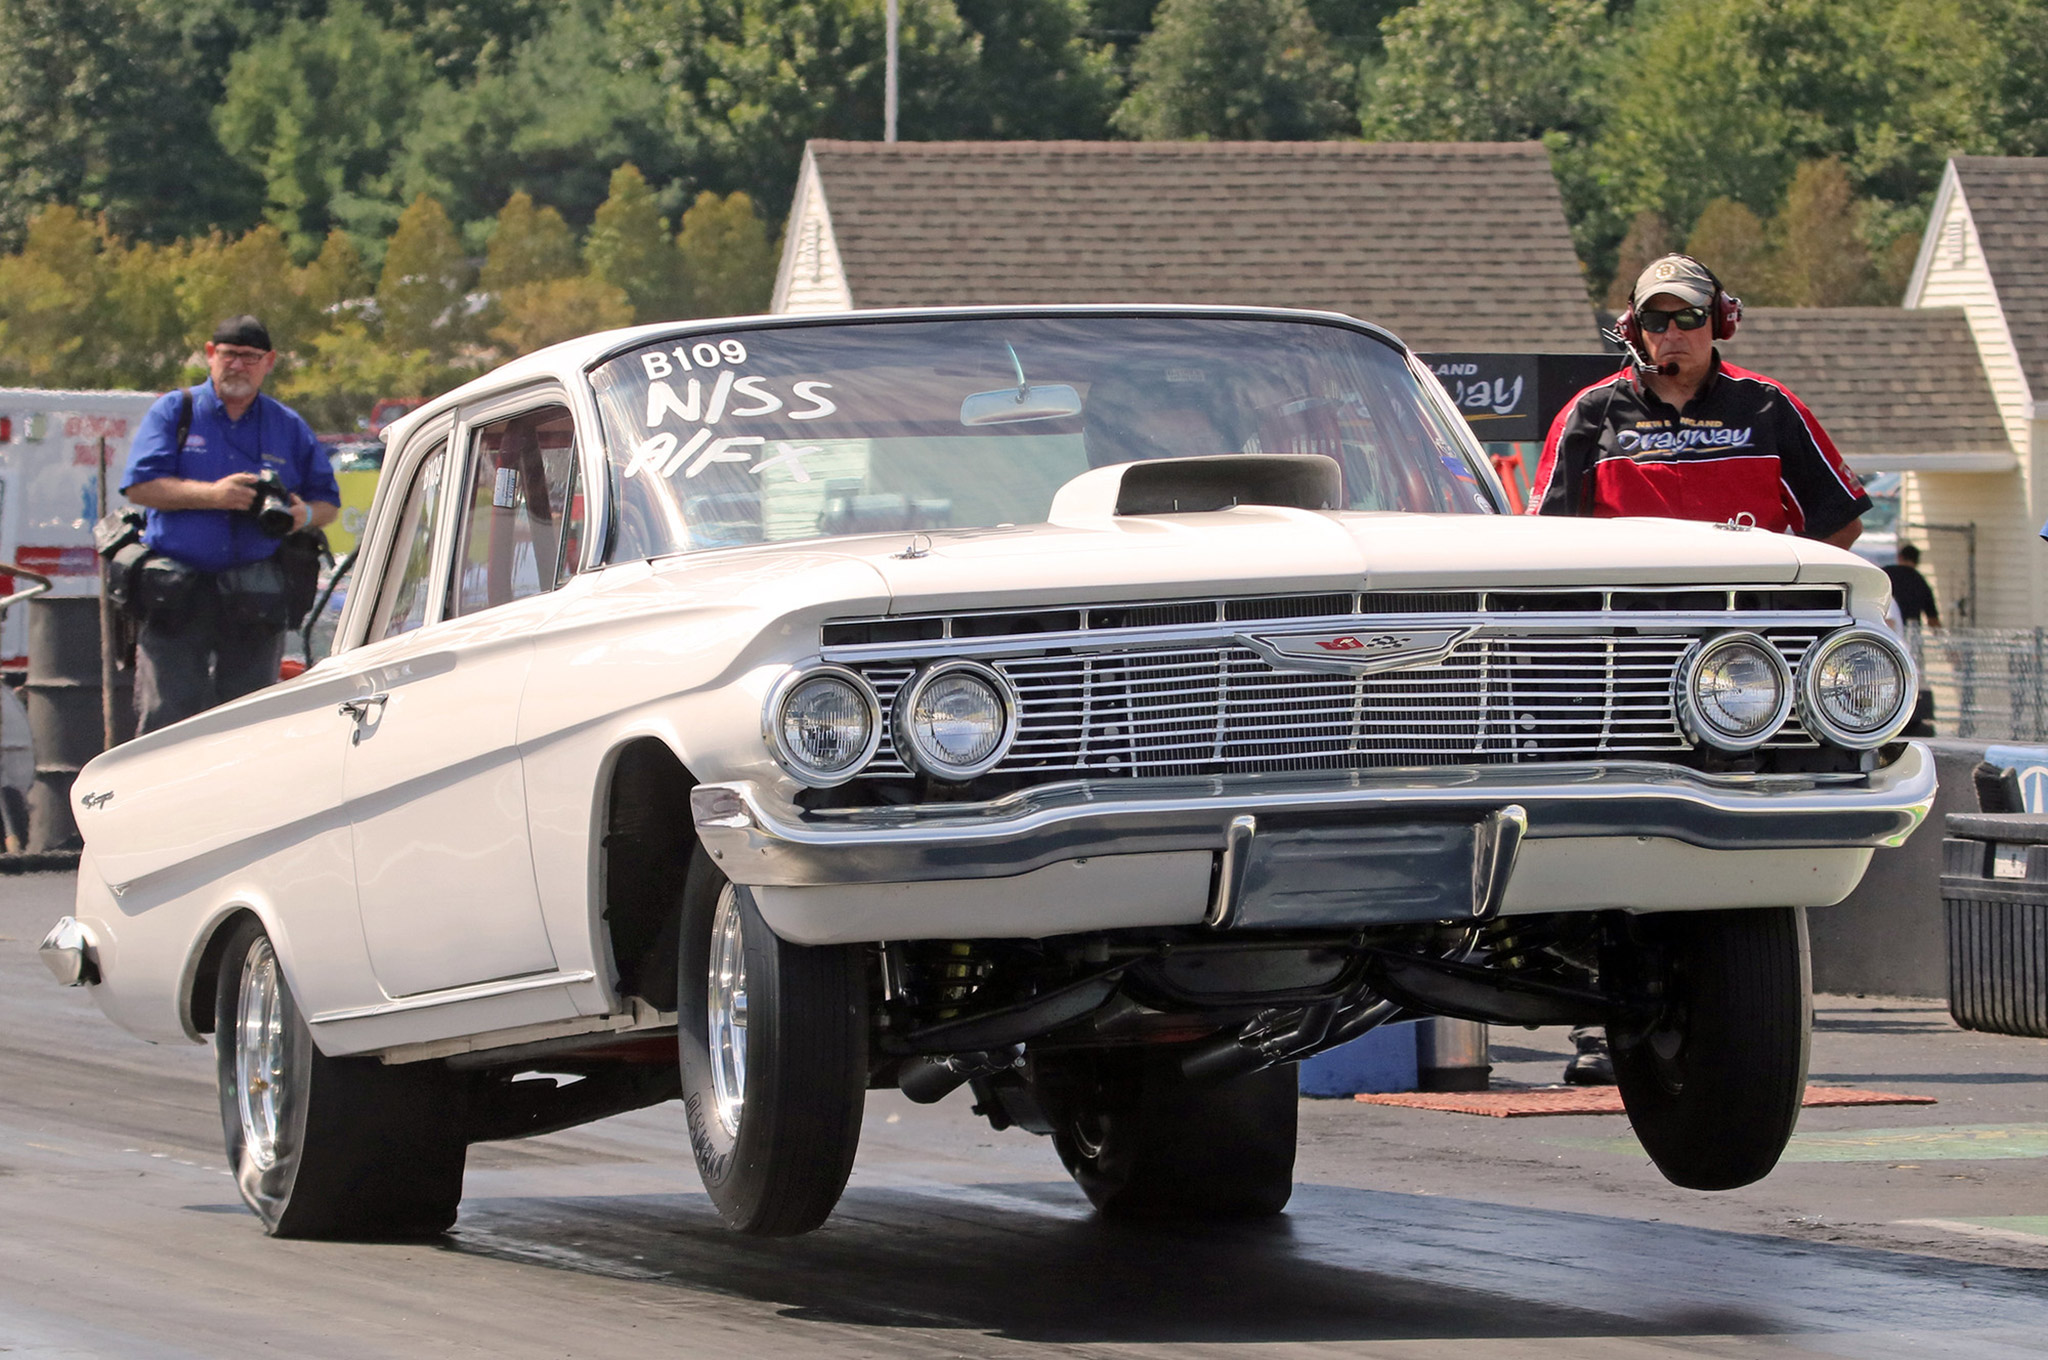 Brian Lombard was low qualifier in Nostalgia Super Stock with this 409-powered 1961 Biscayne, which posted a 9.42 e.t. at 139+ mph.